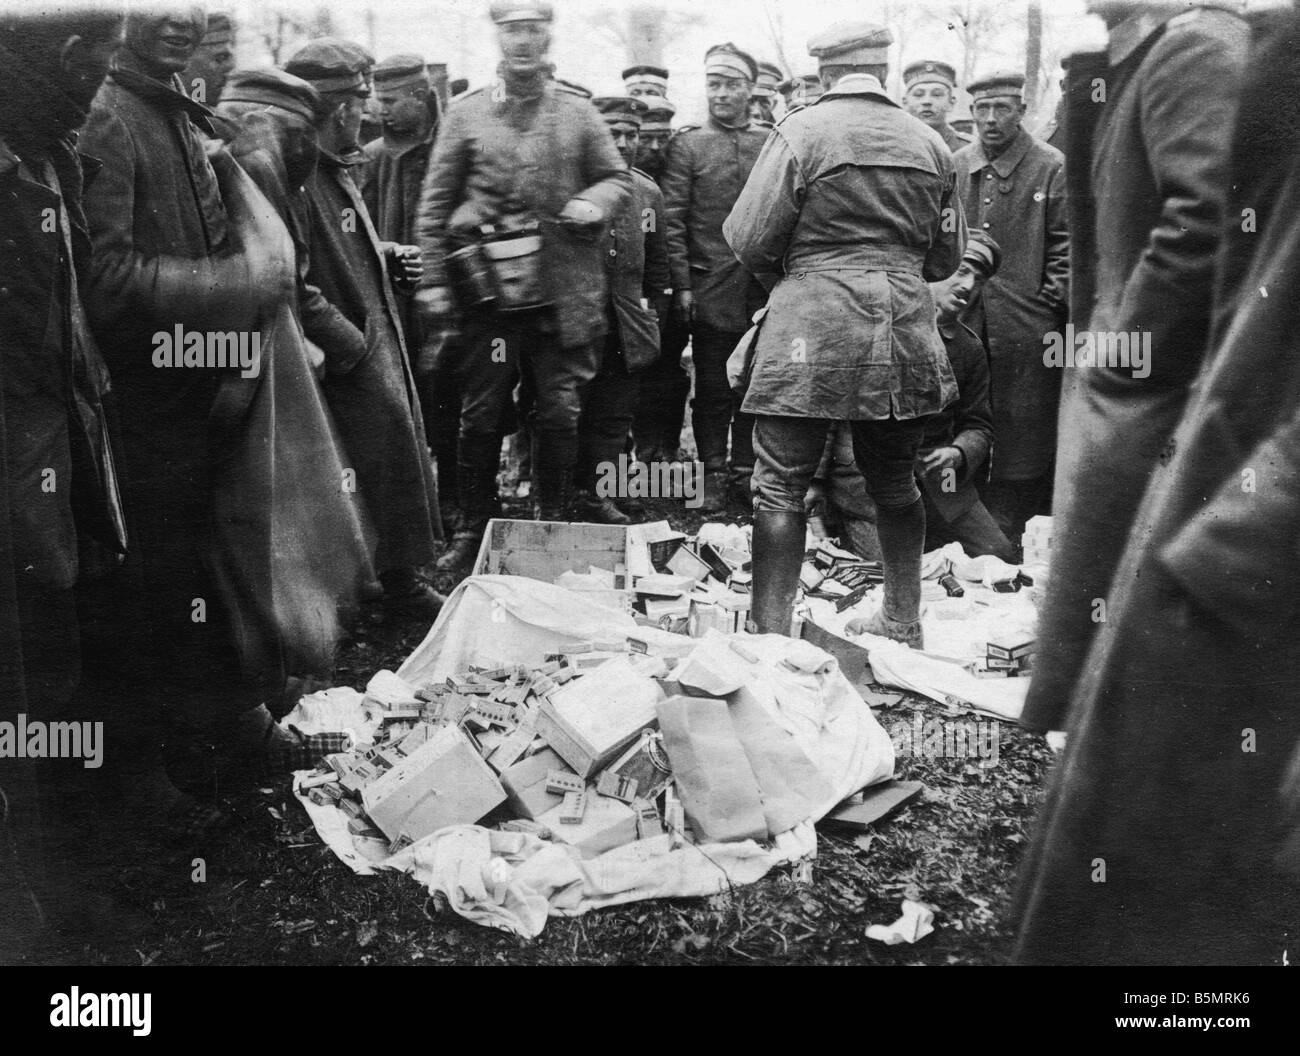 9 1918 3 0 A1 12 WW1 West Fr Ger soldiers loot World War 1 Western Front German major offensive March July 1918 - Stock Image